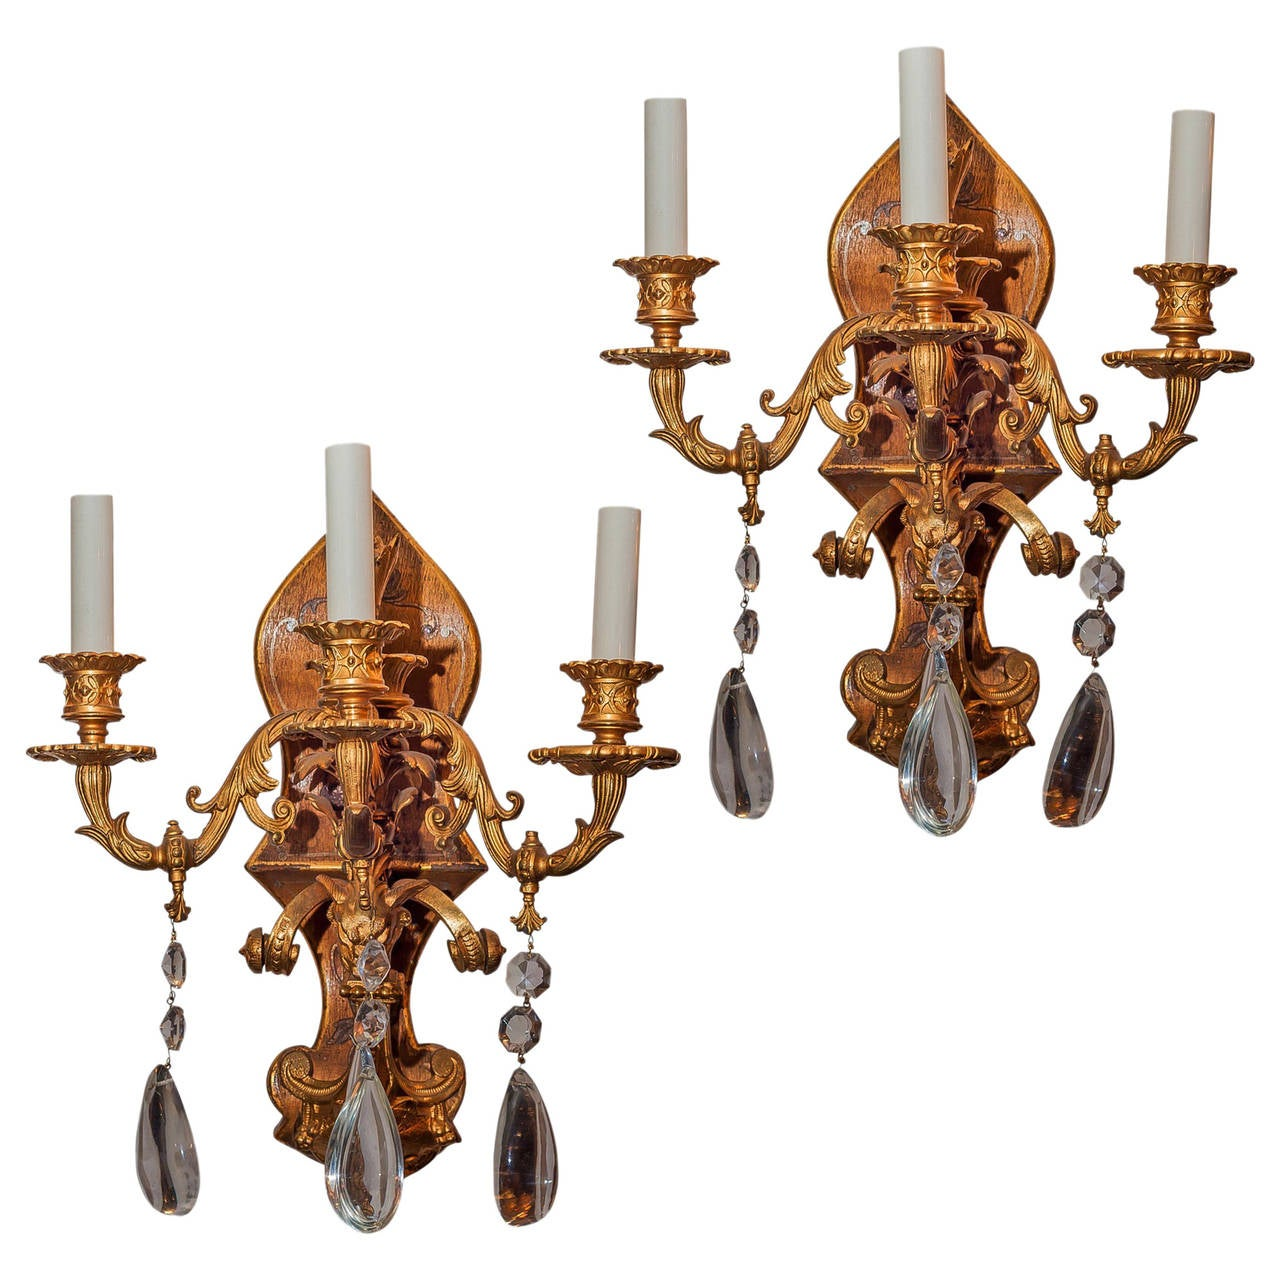 Pair of Gilt Metal Painted Chinoiserie Three-Arm Wall Light Sconces For Sale at 1stdibs